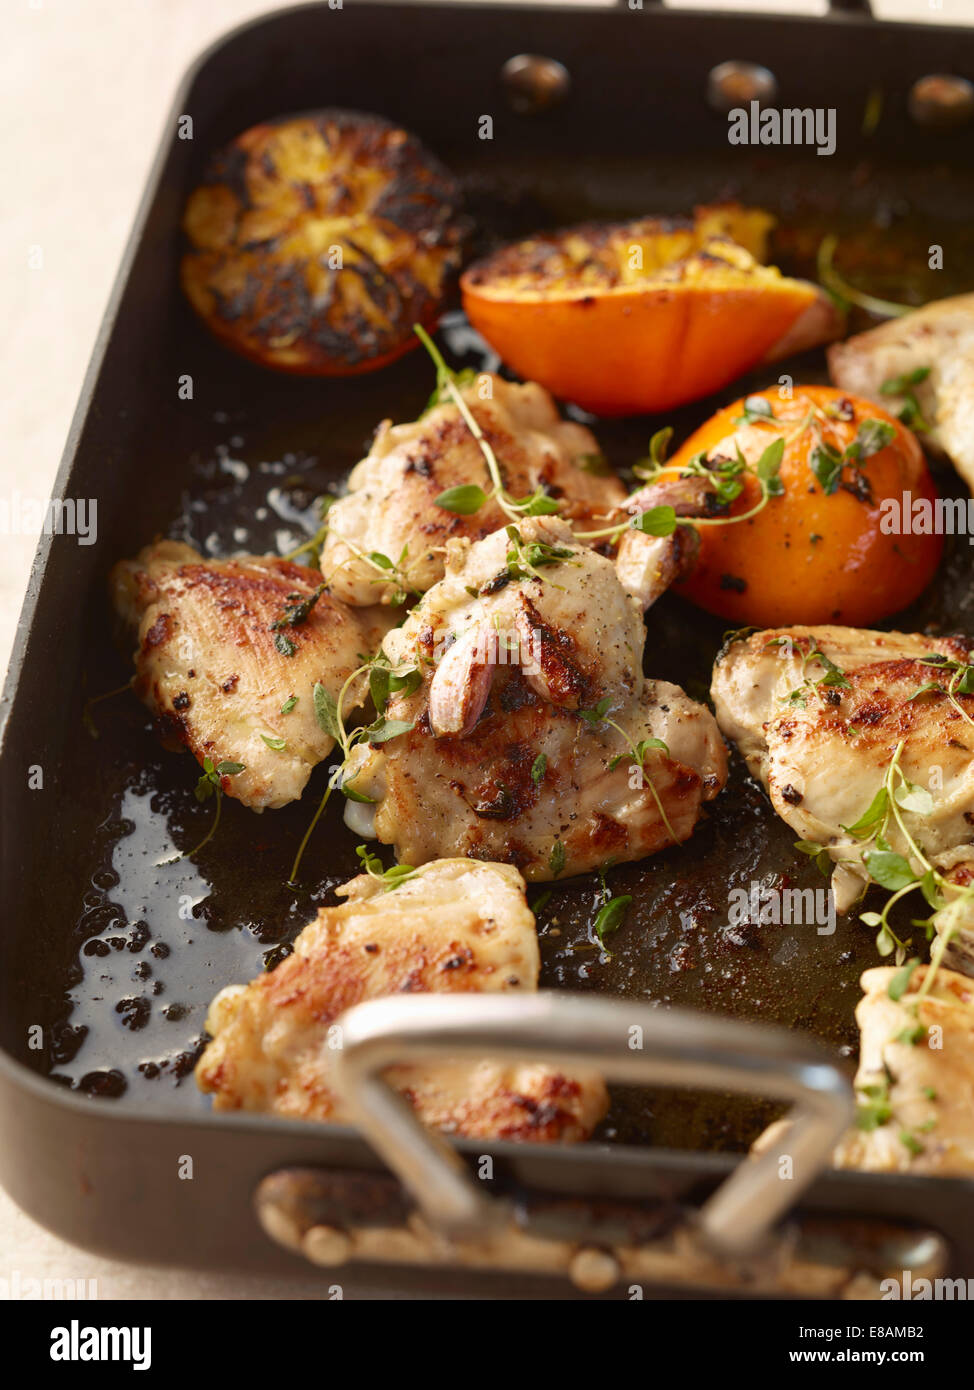 Rustic roasted garlic chicken with orange and thyme - Stock Image